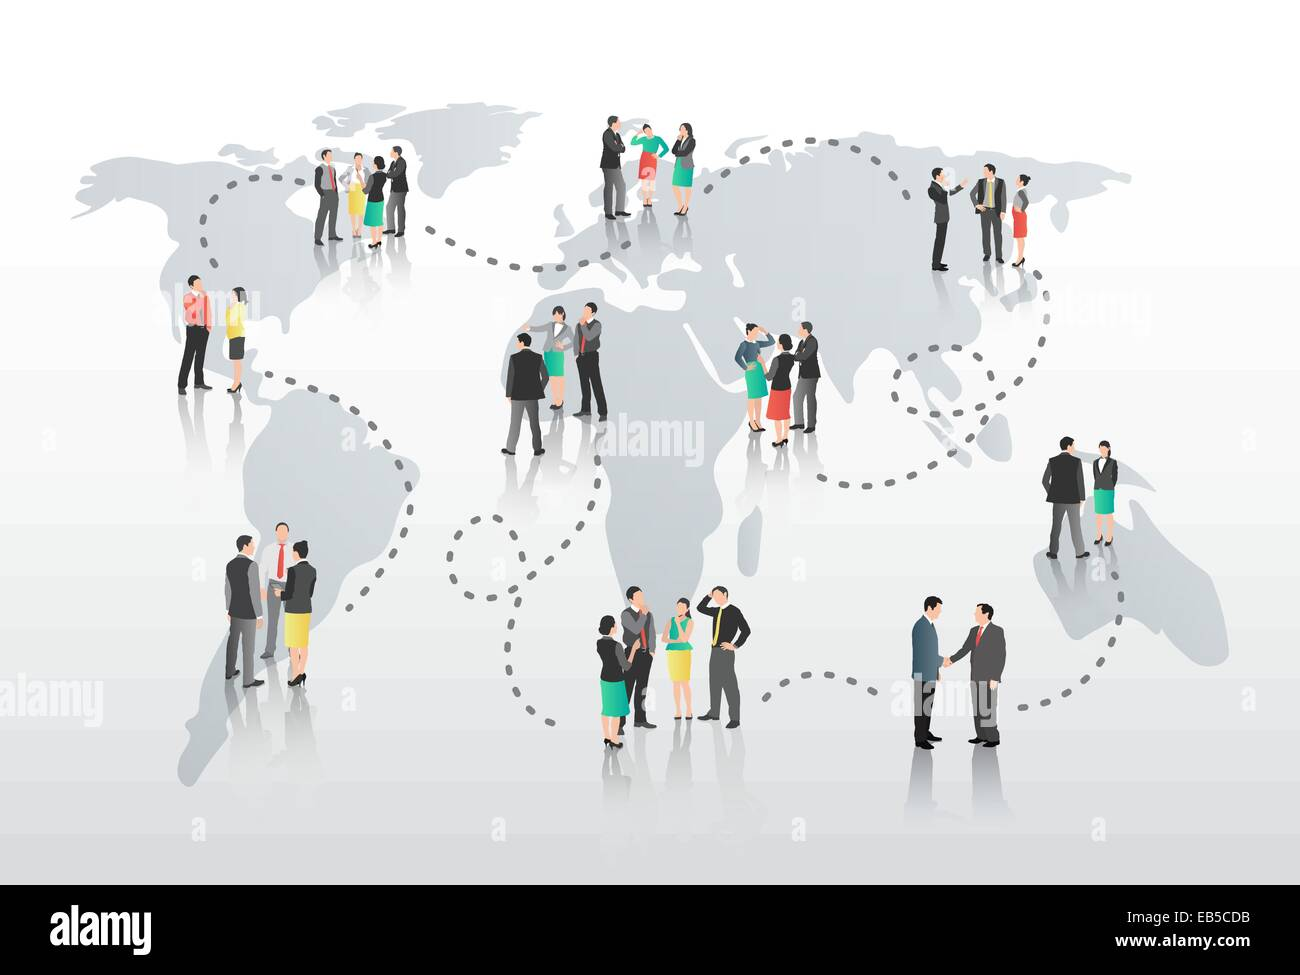 Business people with connecting lines and world map stock vector art business people with connecting lines and world map gumiabroncs Choice Image